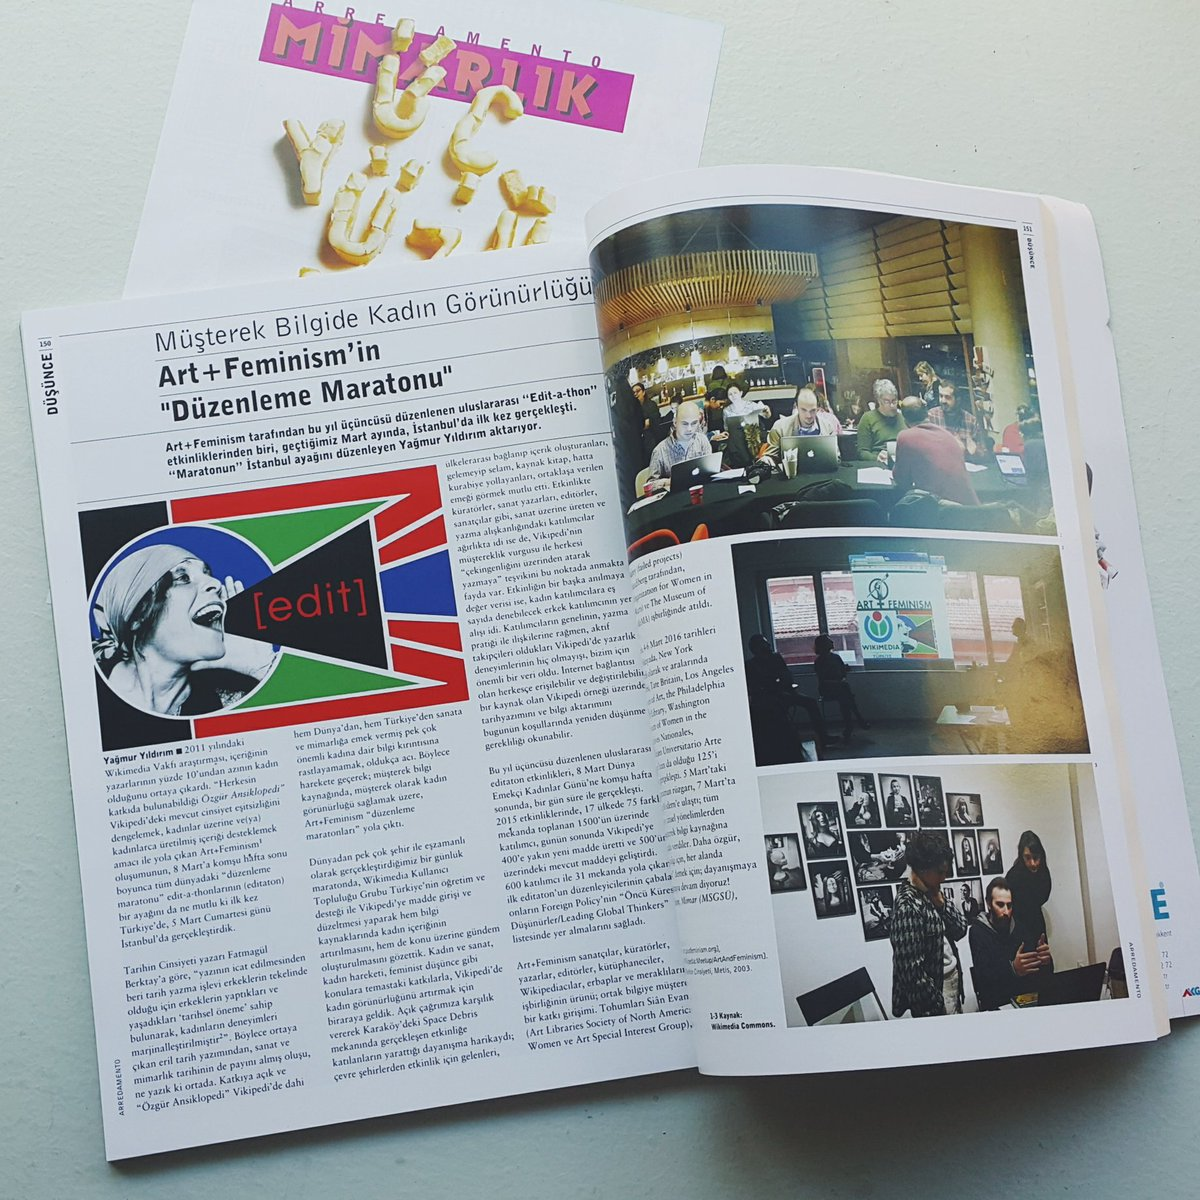 I wrote a review for Arredamento magazine on #artandfeminism edit-a-thon as the Istanbul organizer @artandfeminism